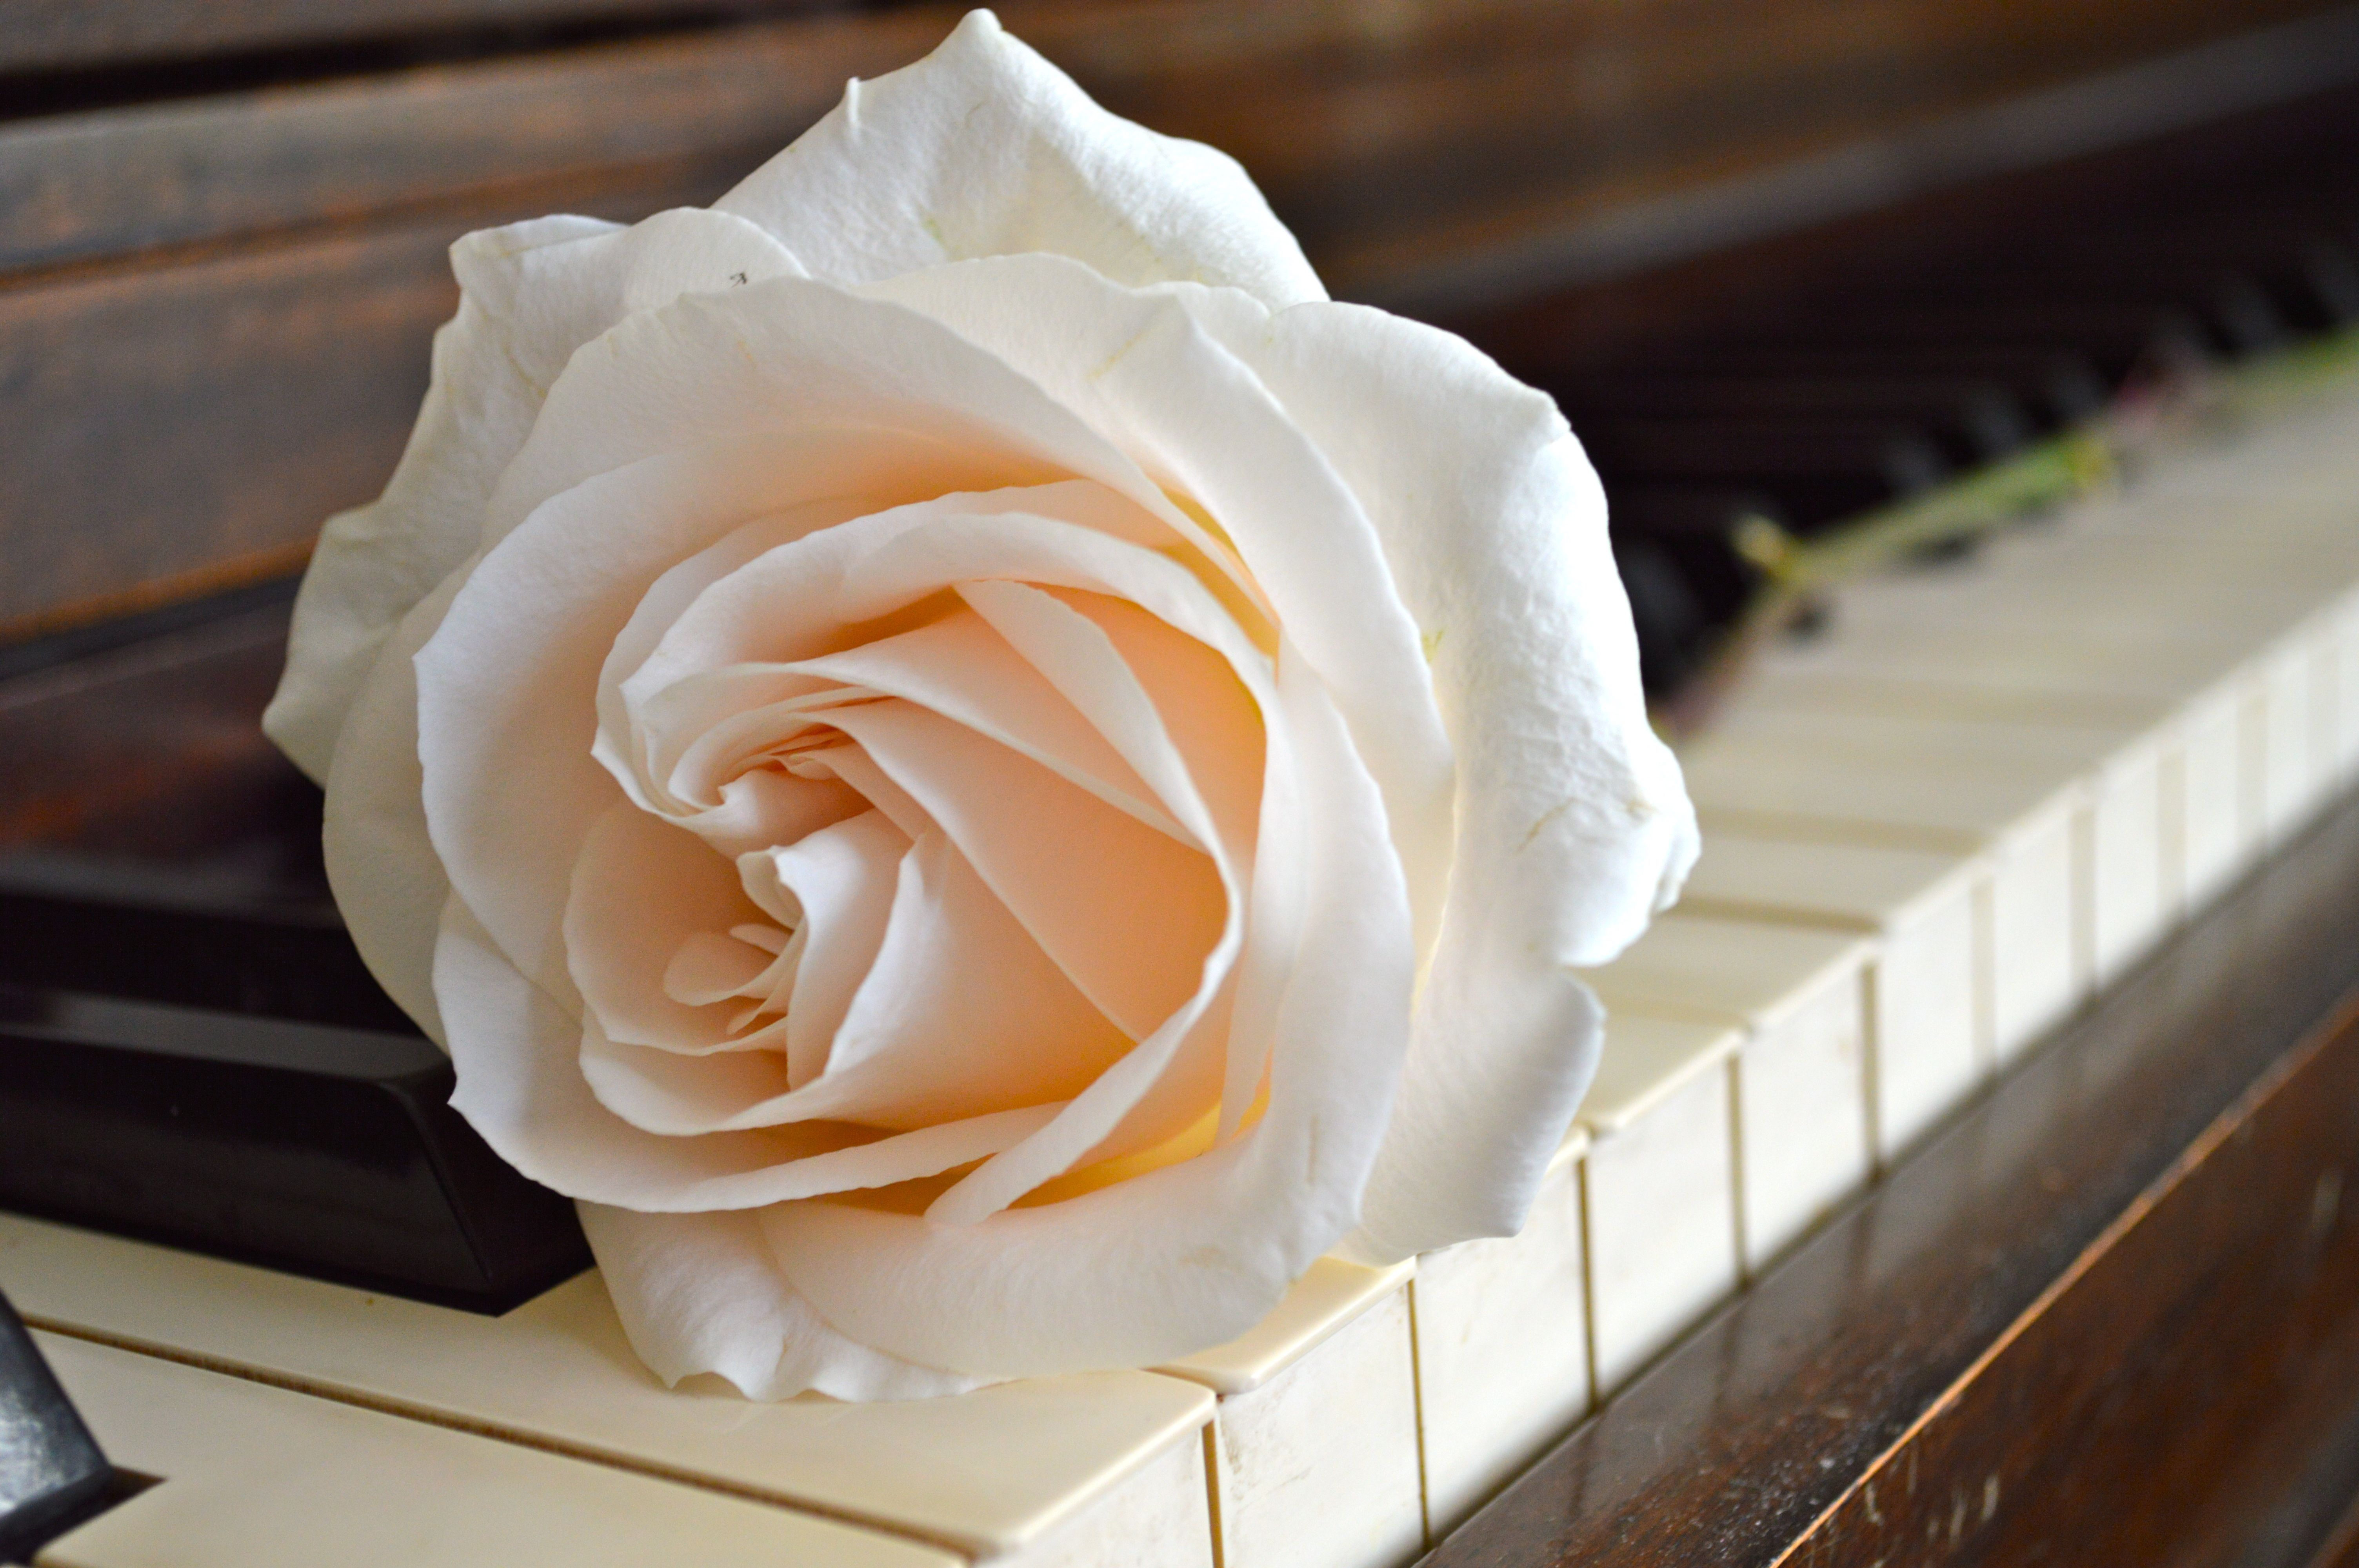 rose on piano | Roses Pianos | Rose, Piano, White roses